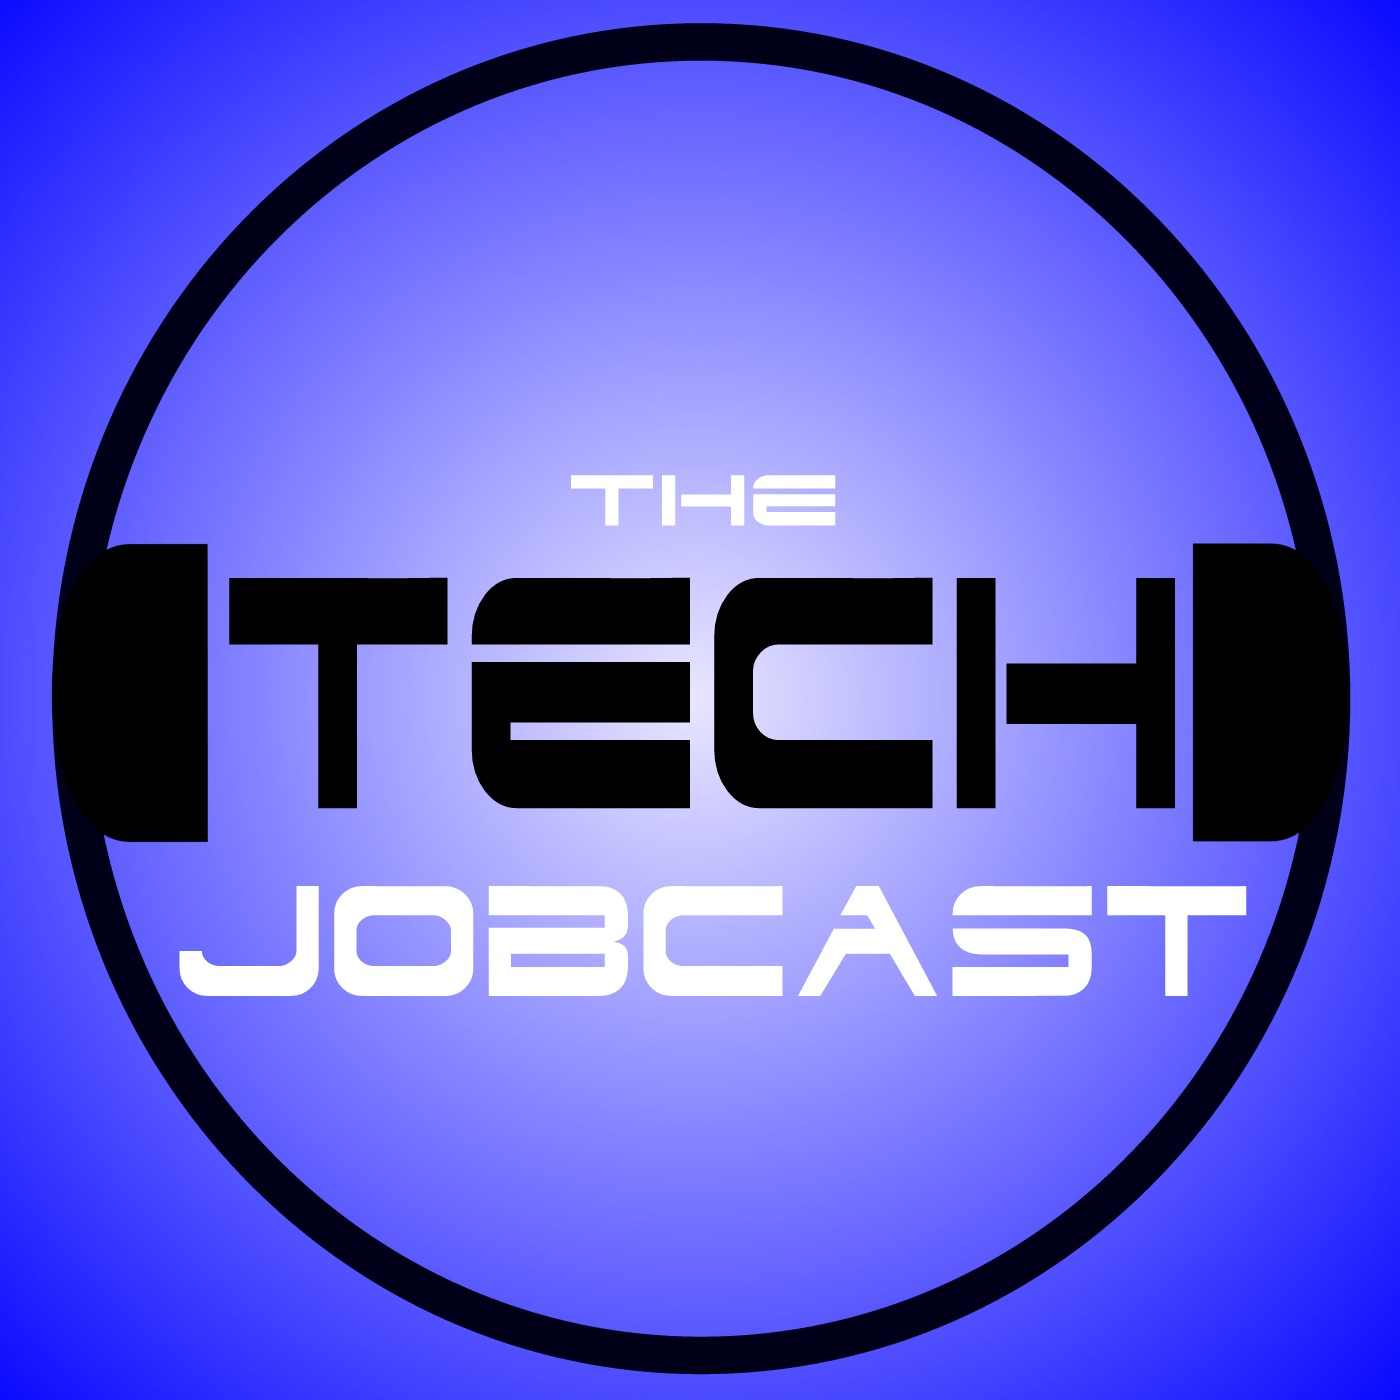 IT Job listings for the week of July 30, 2017